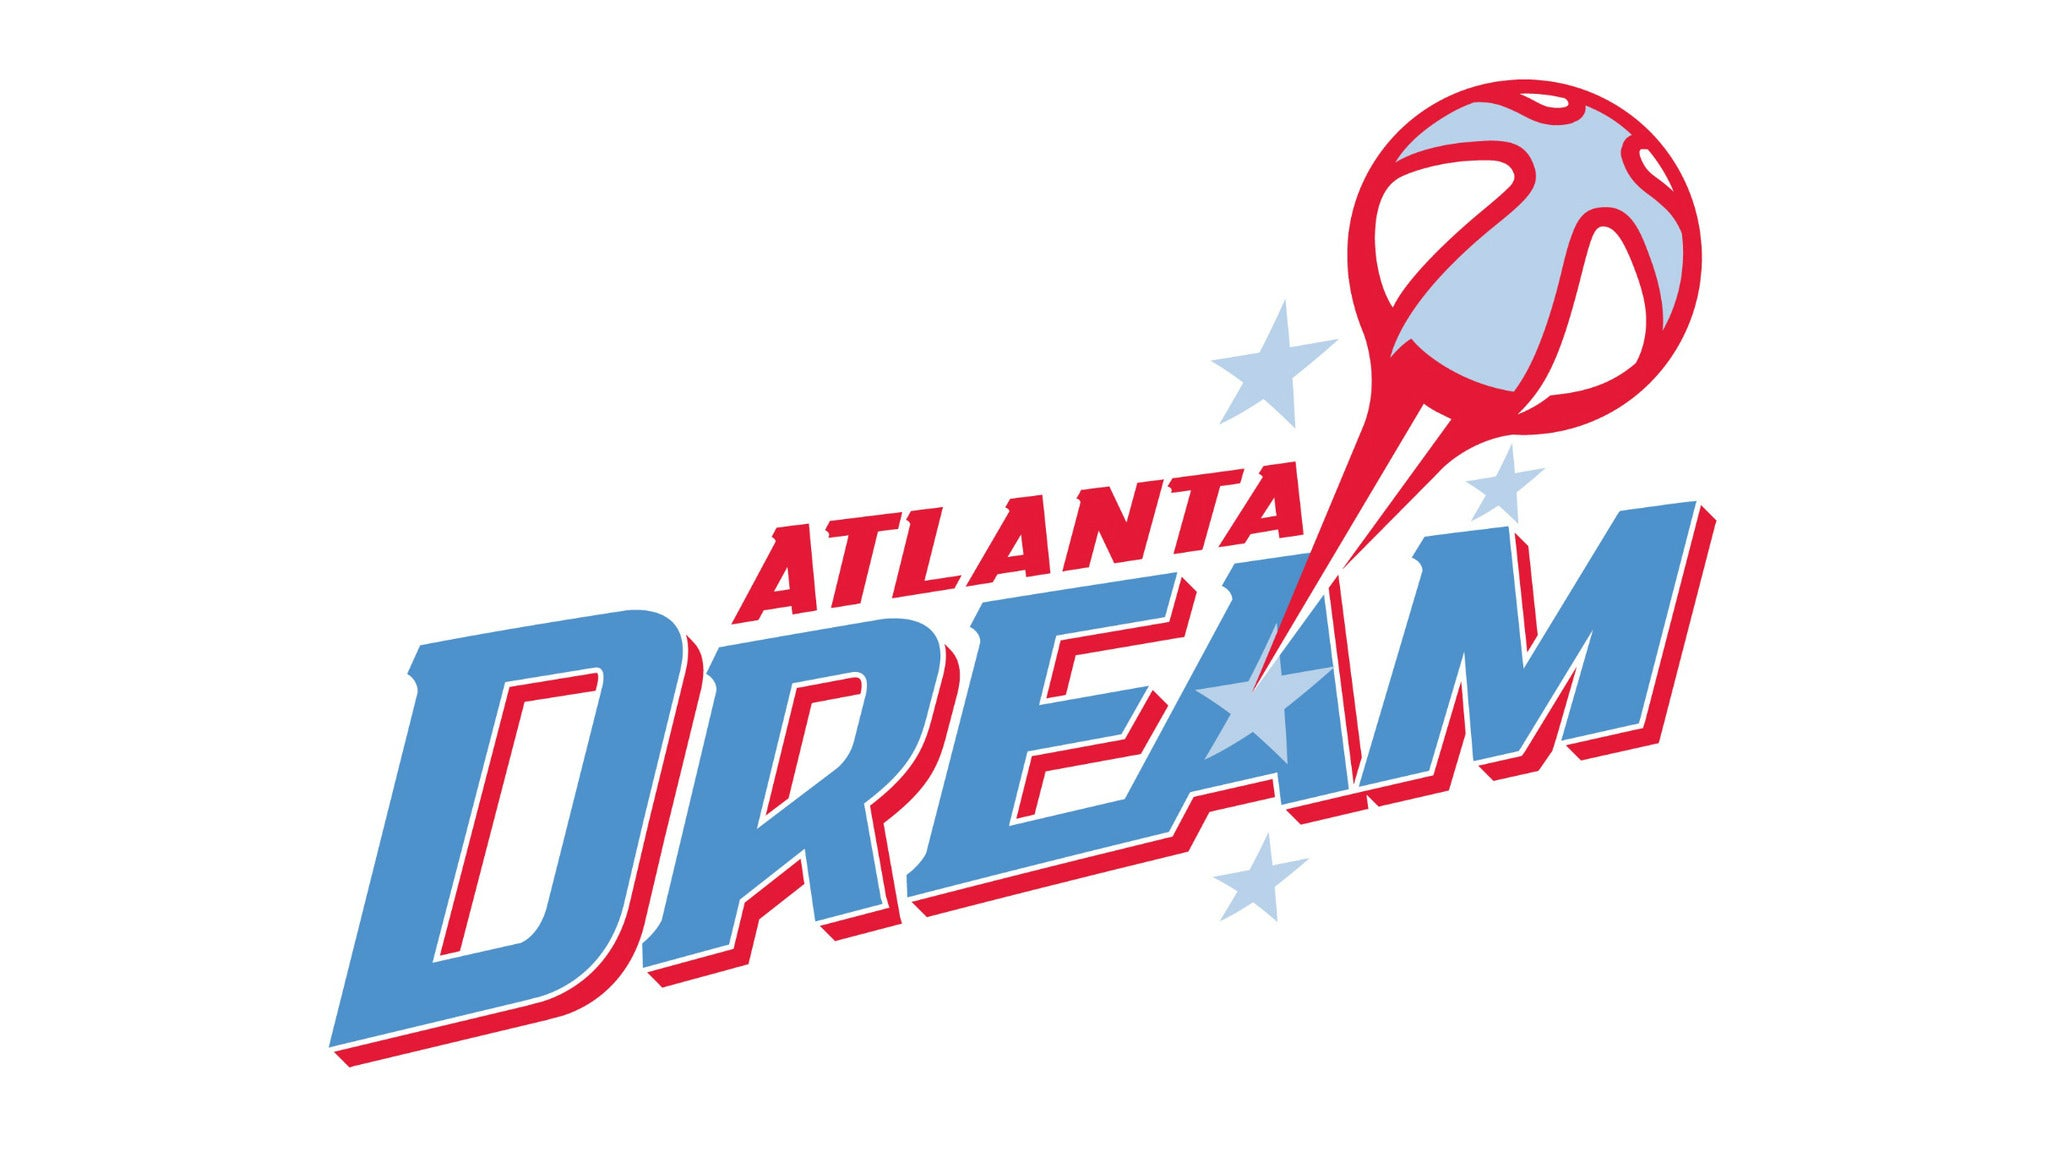 Atlanta Dream vs. Dallas Wings